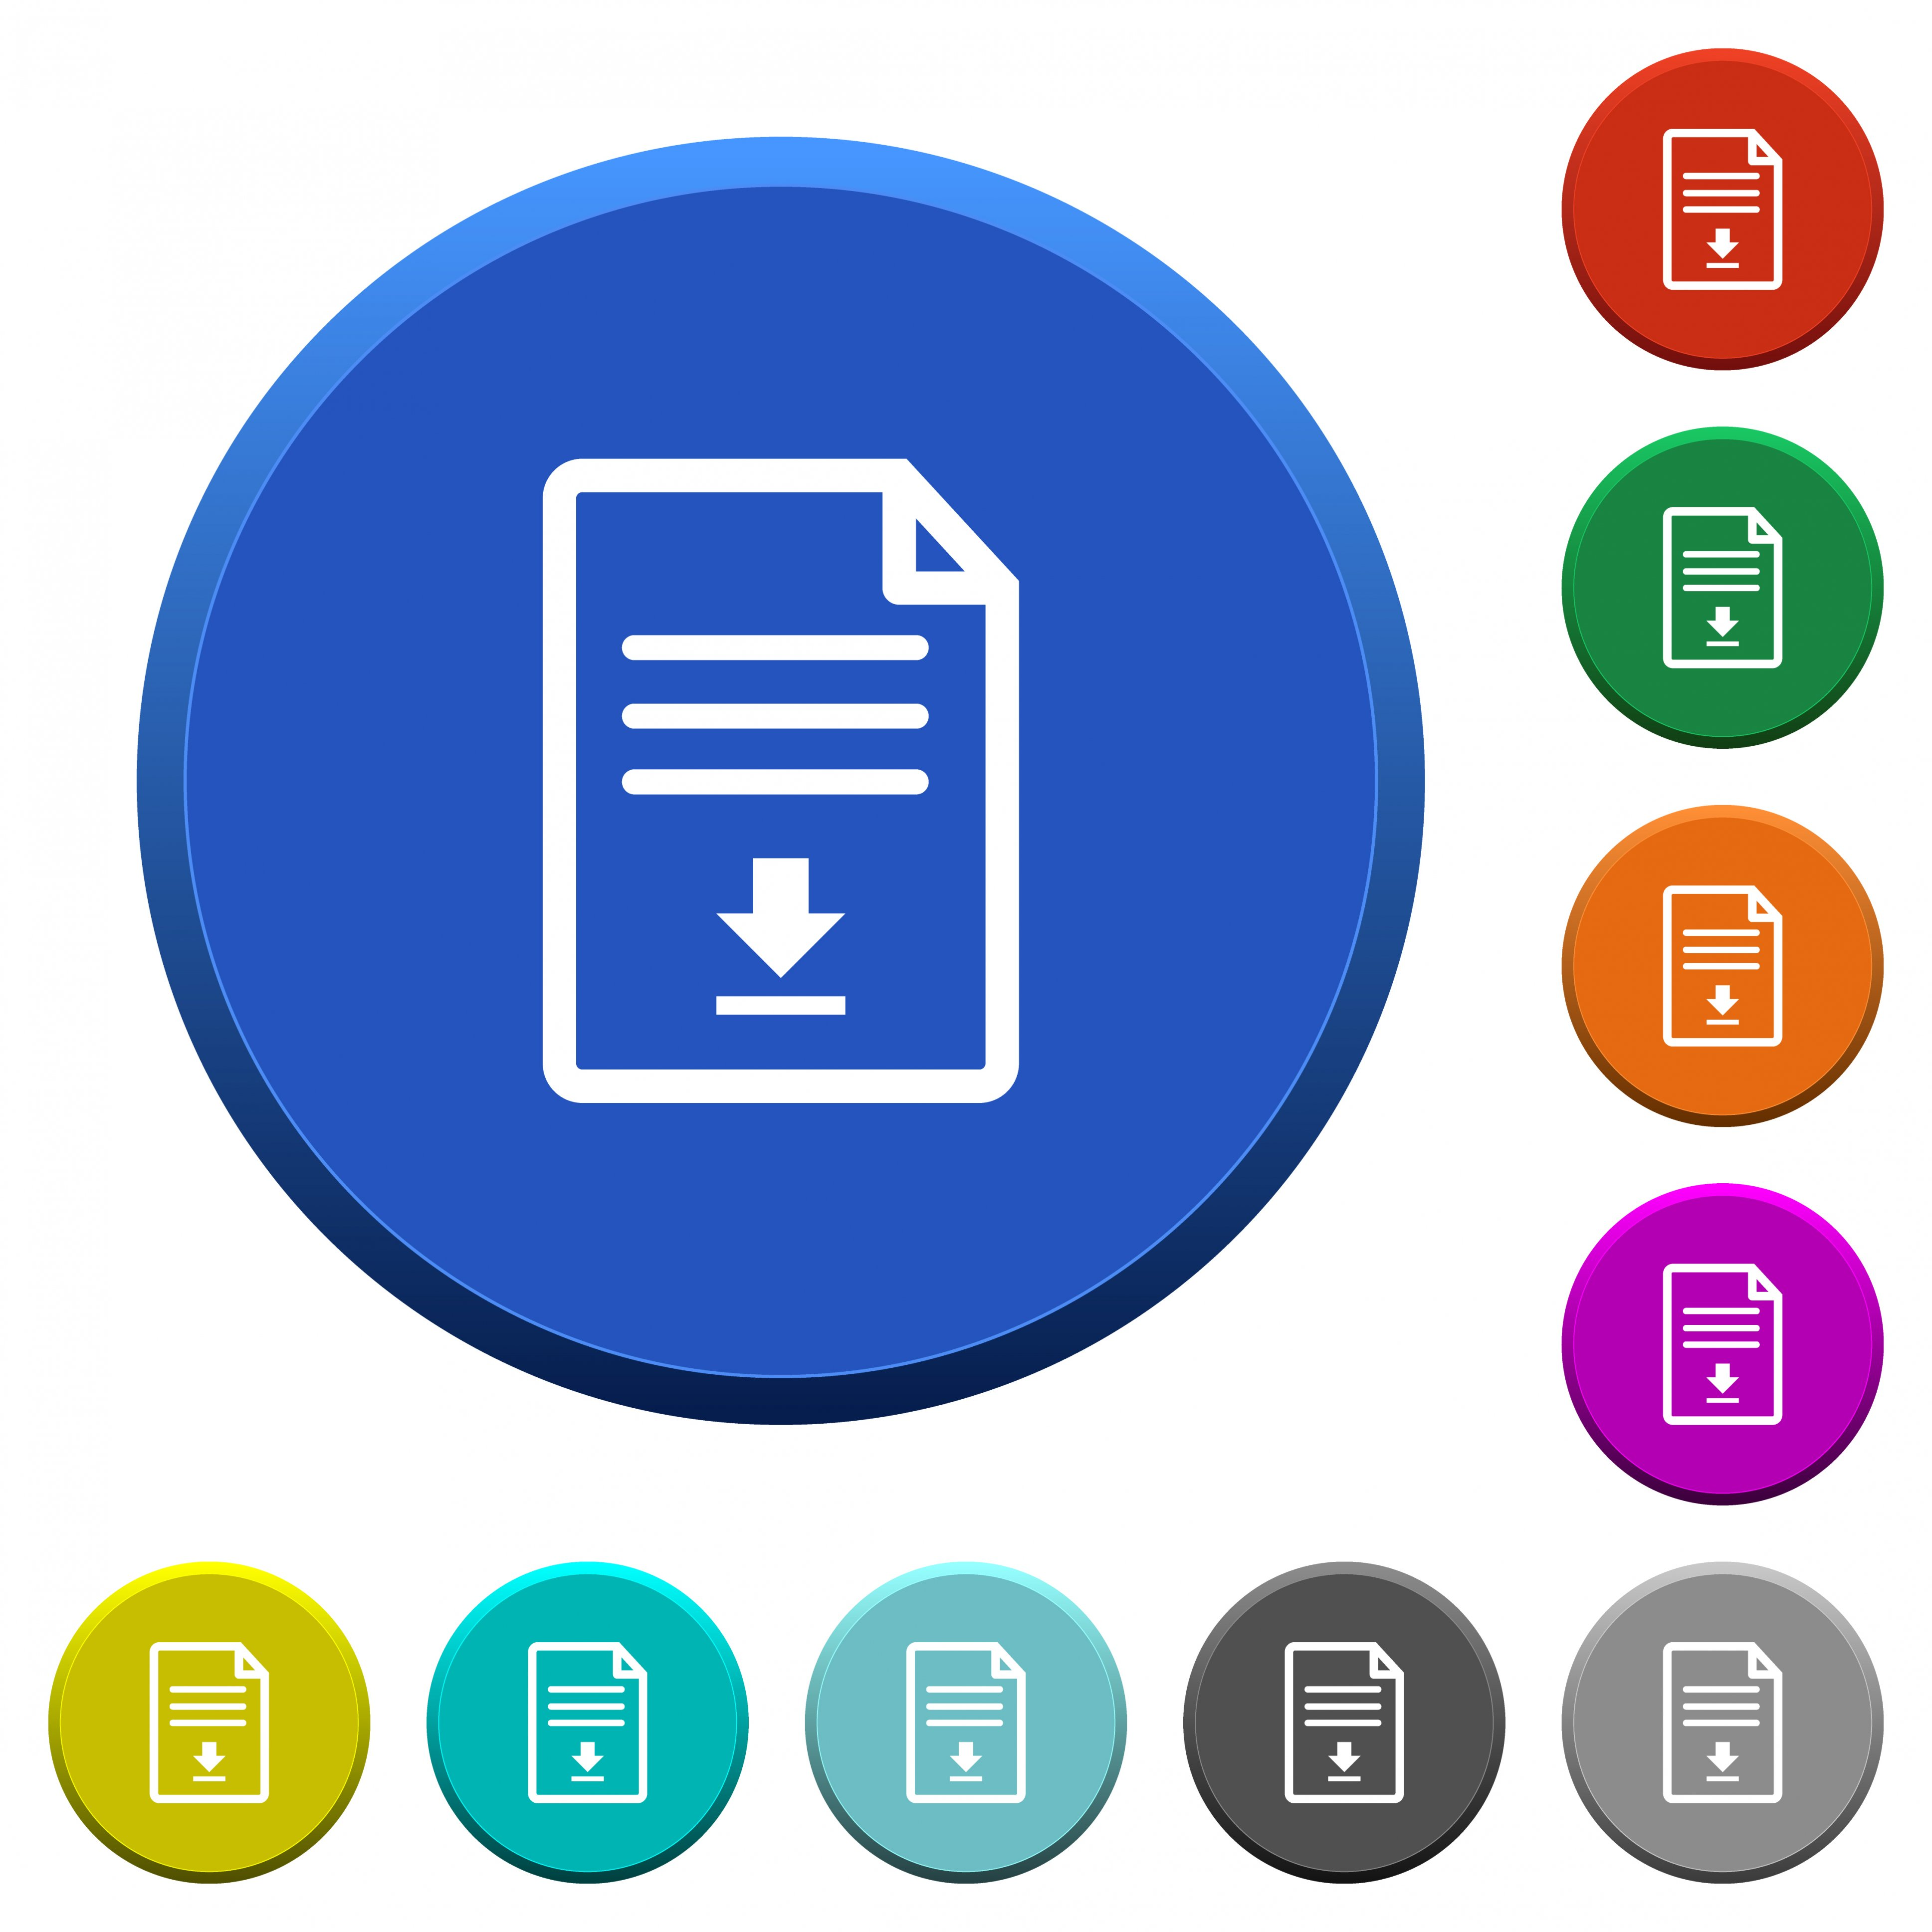 Download document round color beveled buttons with smooth surfaces and flat white icons - Free image